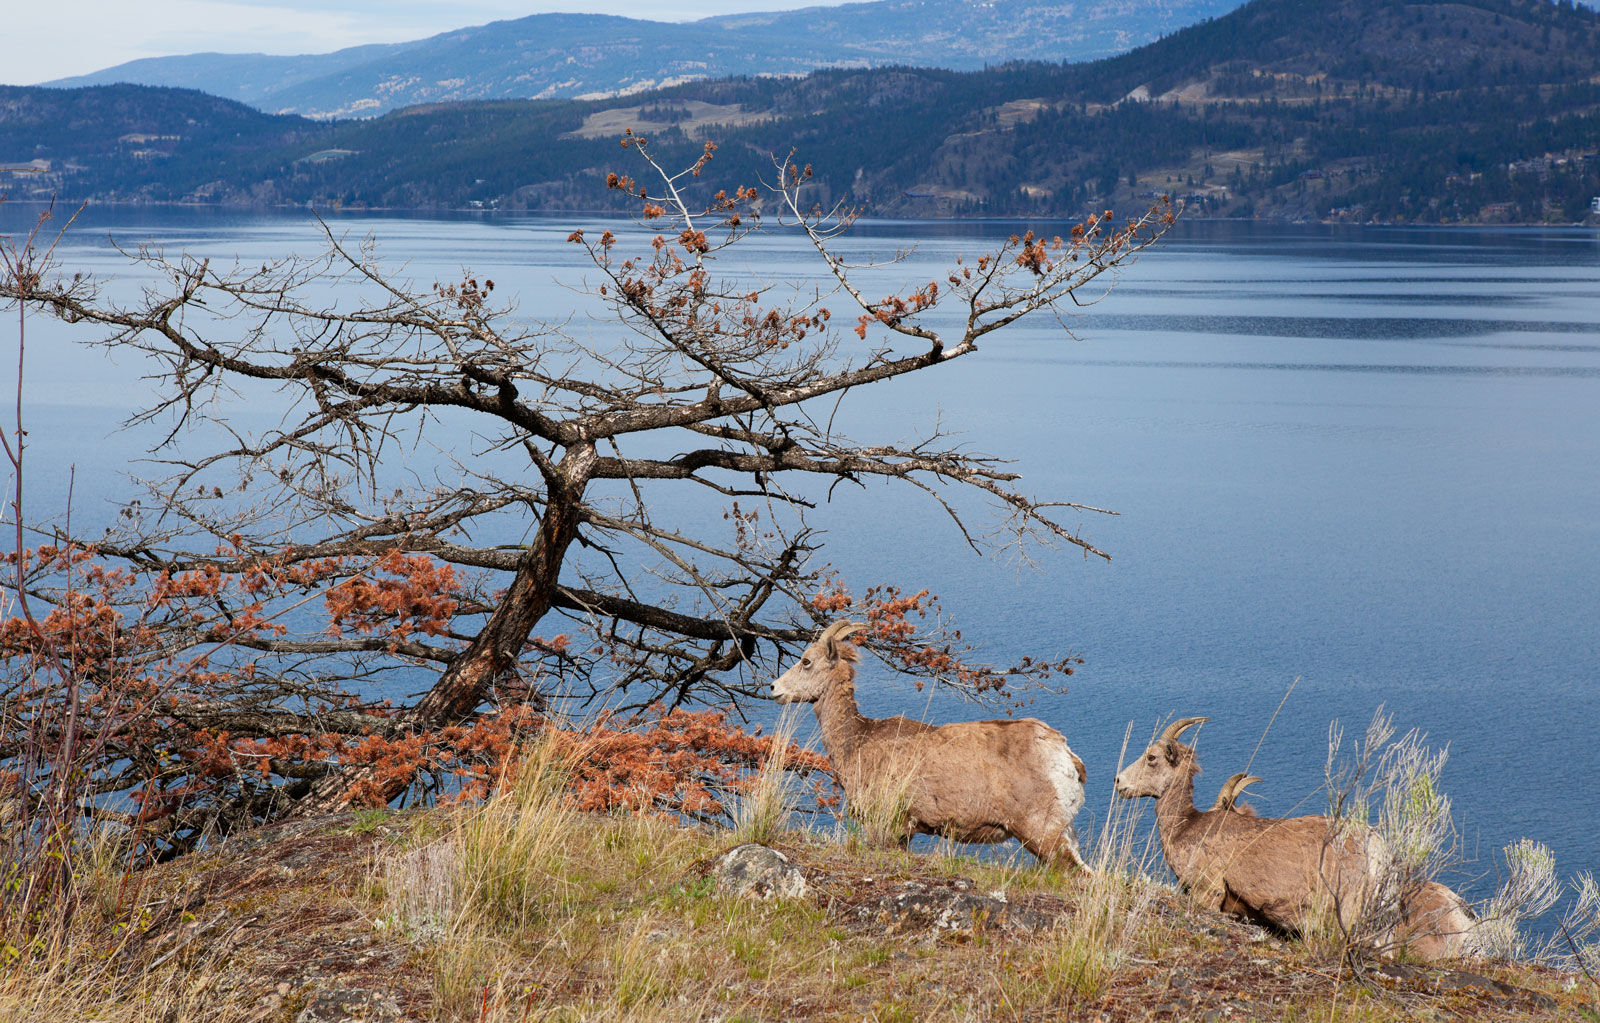 Okanagan Mountain Goats are among the vast wildlife you might be lucky enough to spot on your trip to the valley!